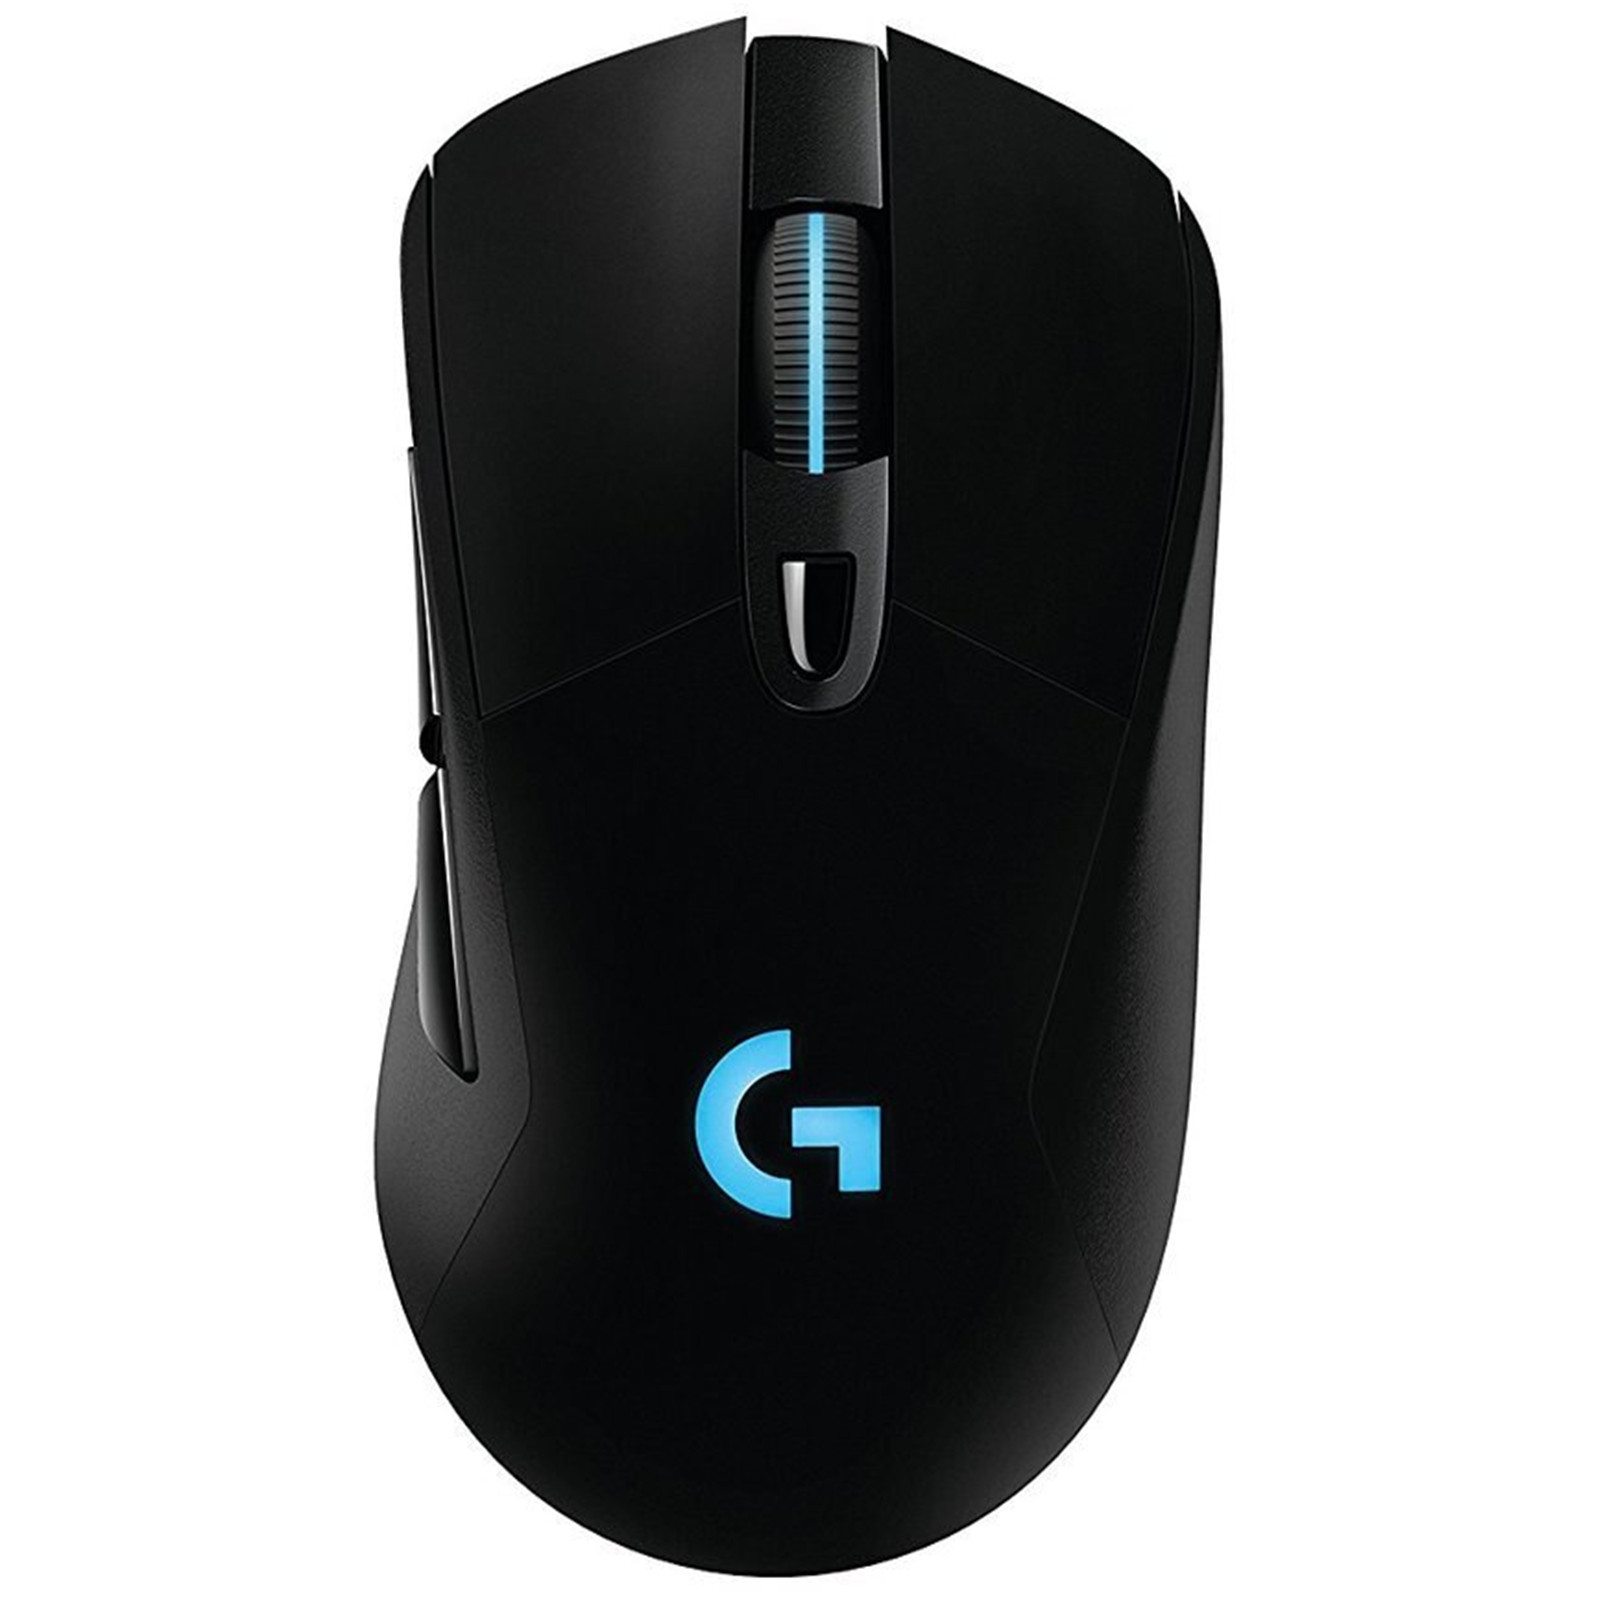 0c6849b2783 Buy the Logitech G703 RGB Lightspeed Wireless Gaming Mouse ( 910 ...